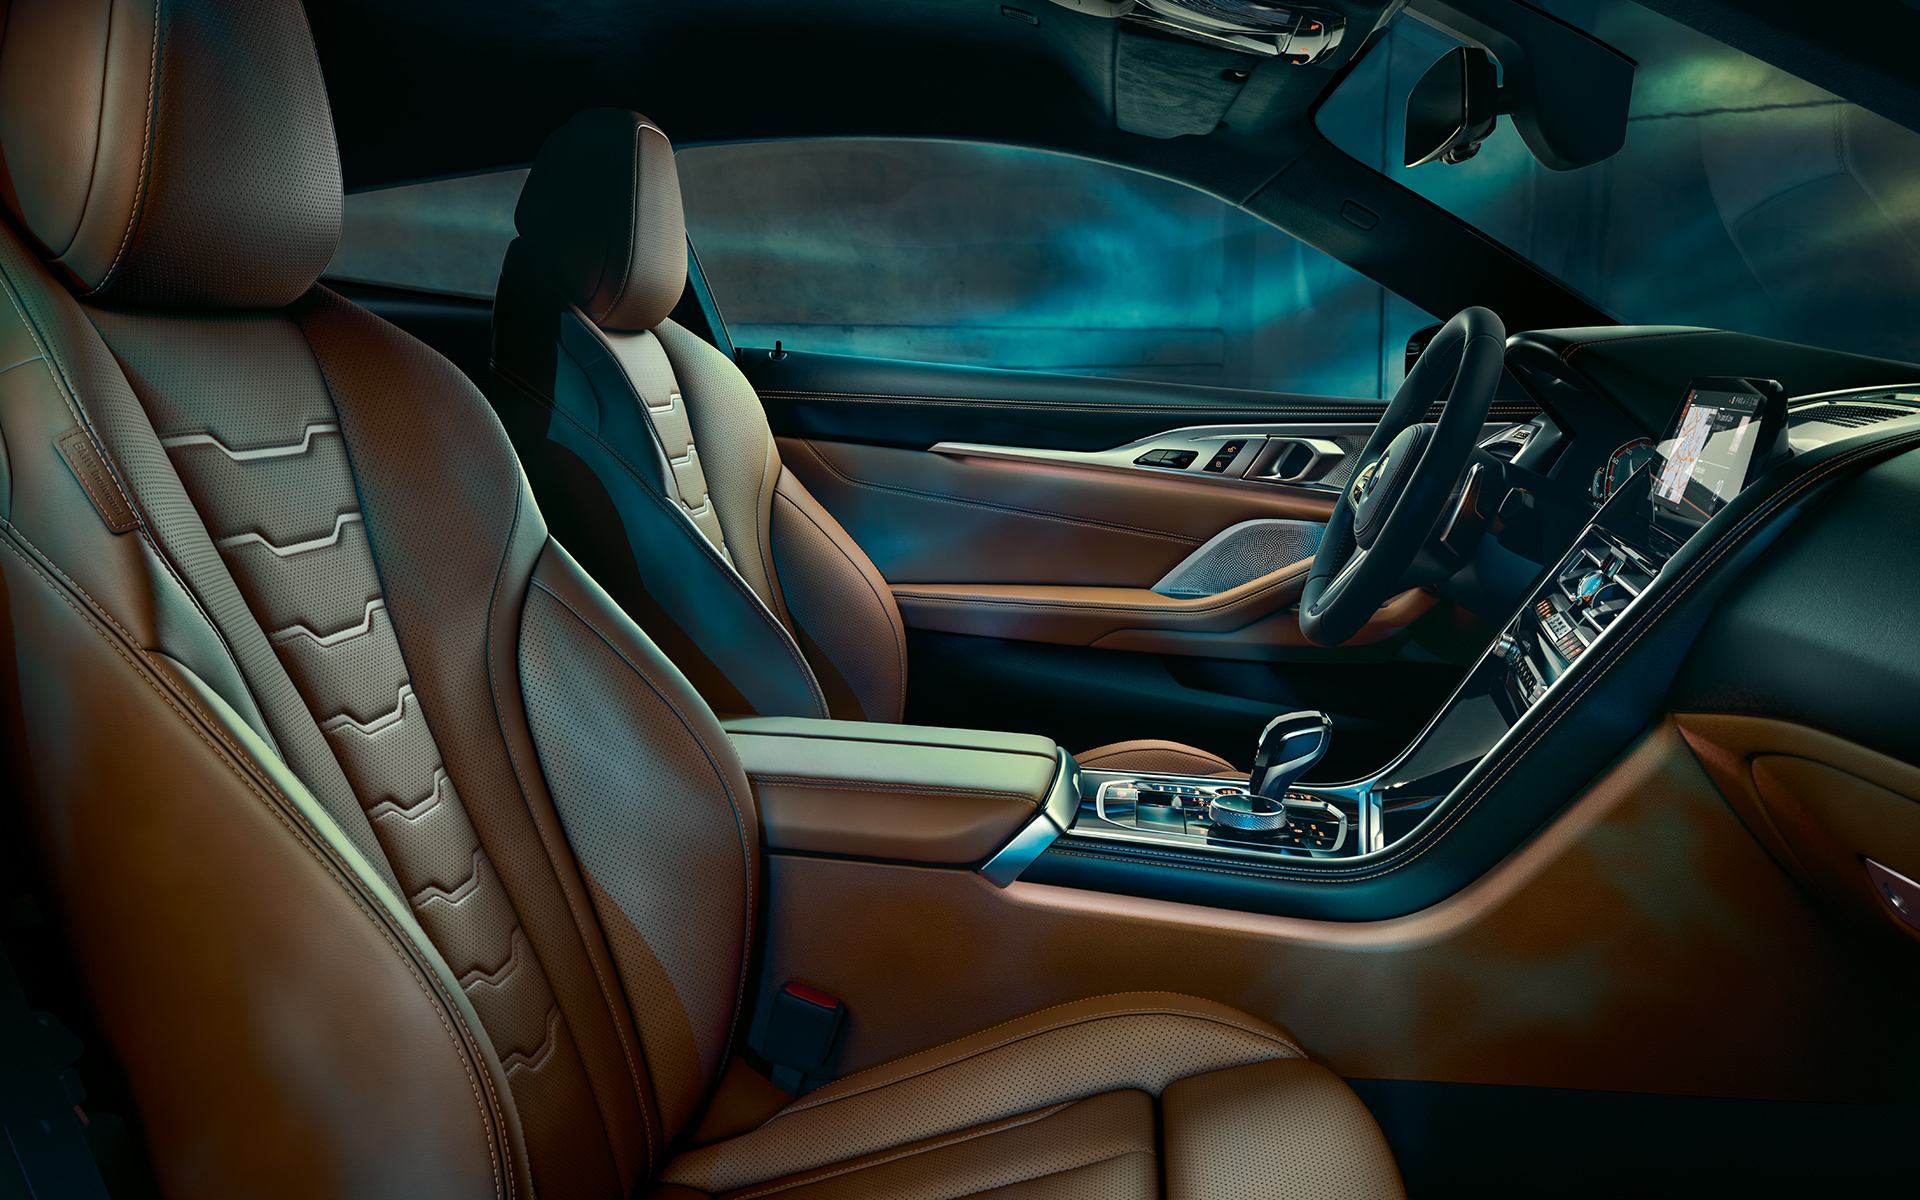 The interior of the BMW 8 Series Coupé, focused on cockpit.